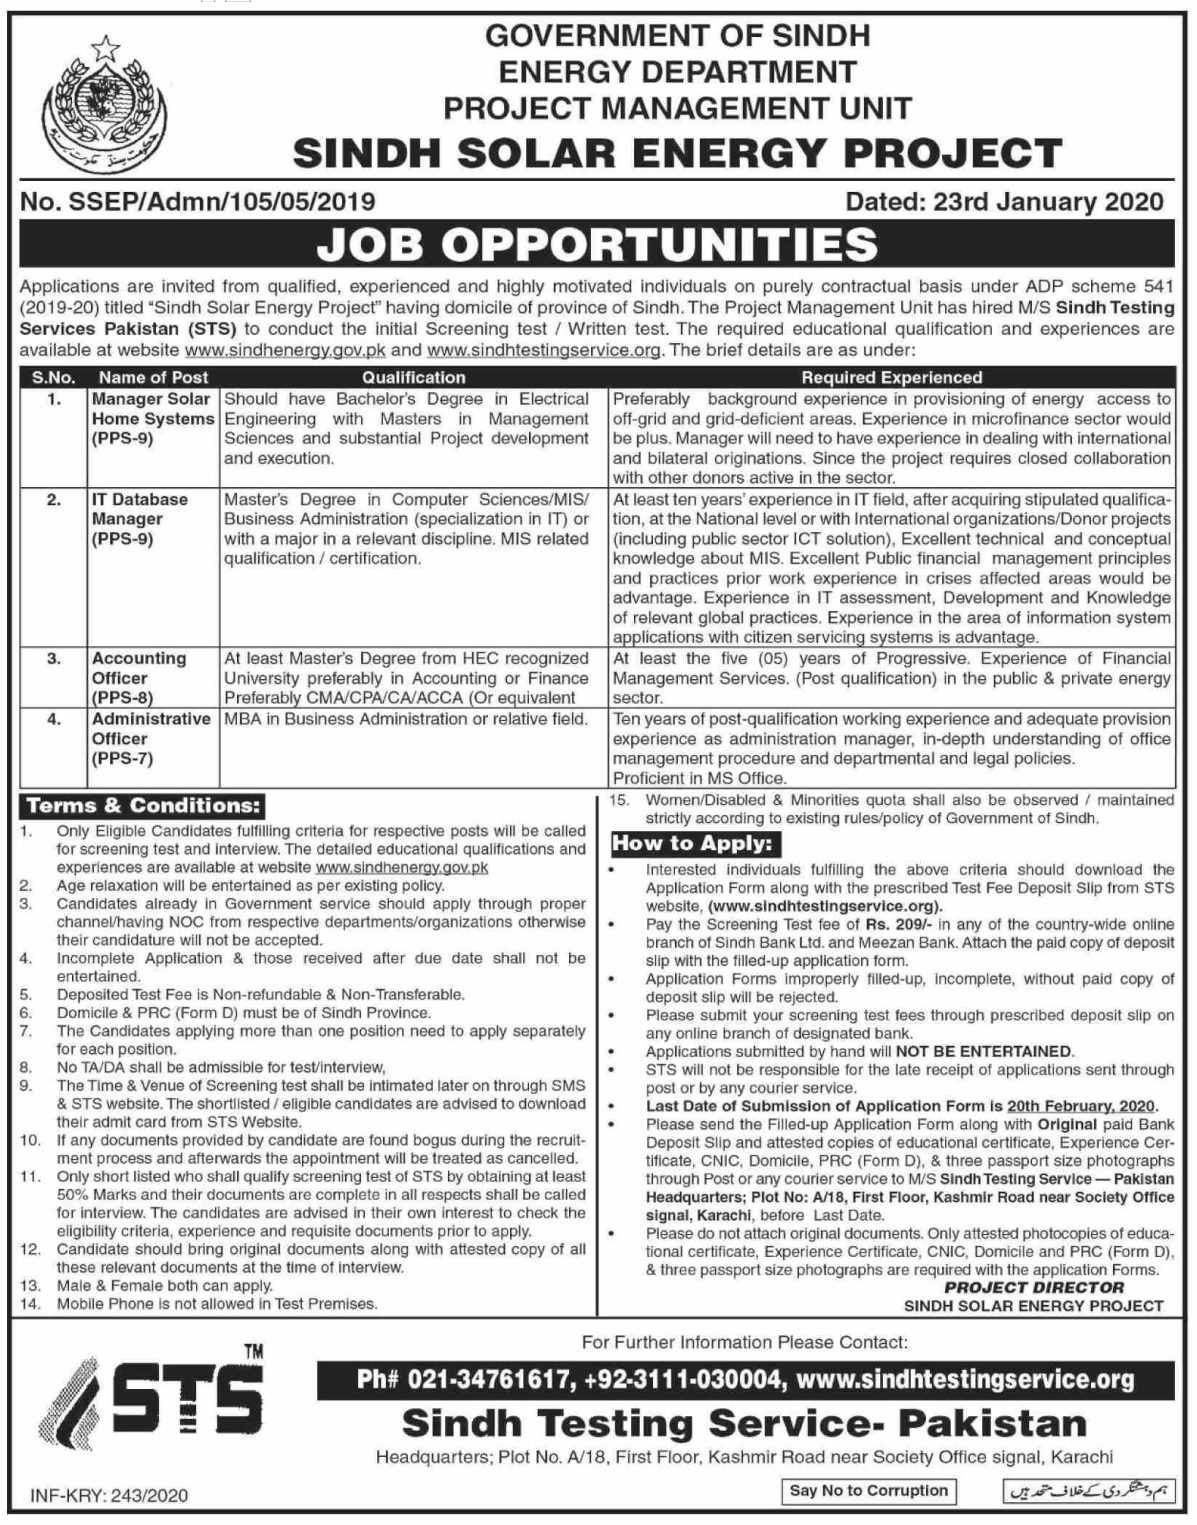 Energy Department Government of Sindh Jobs 2020 - Sindh Jobs